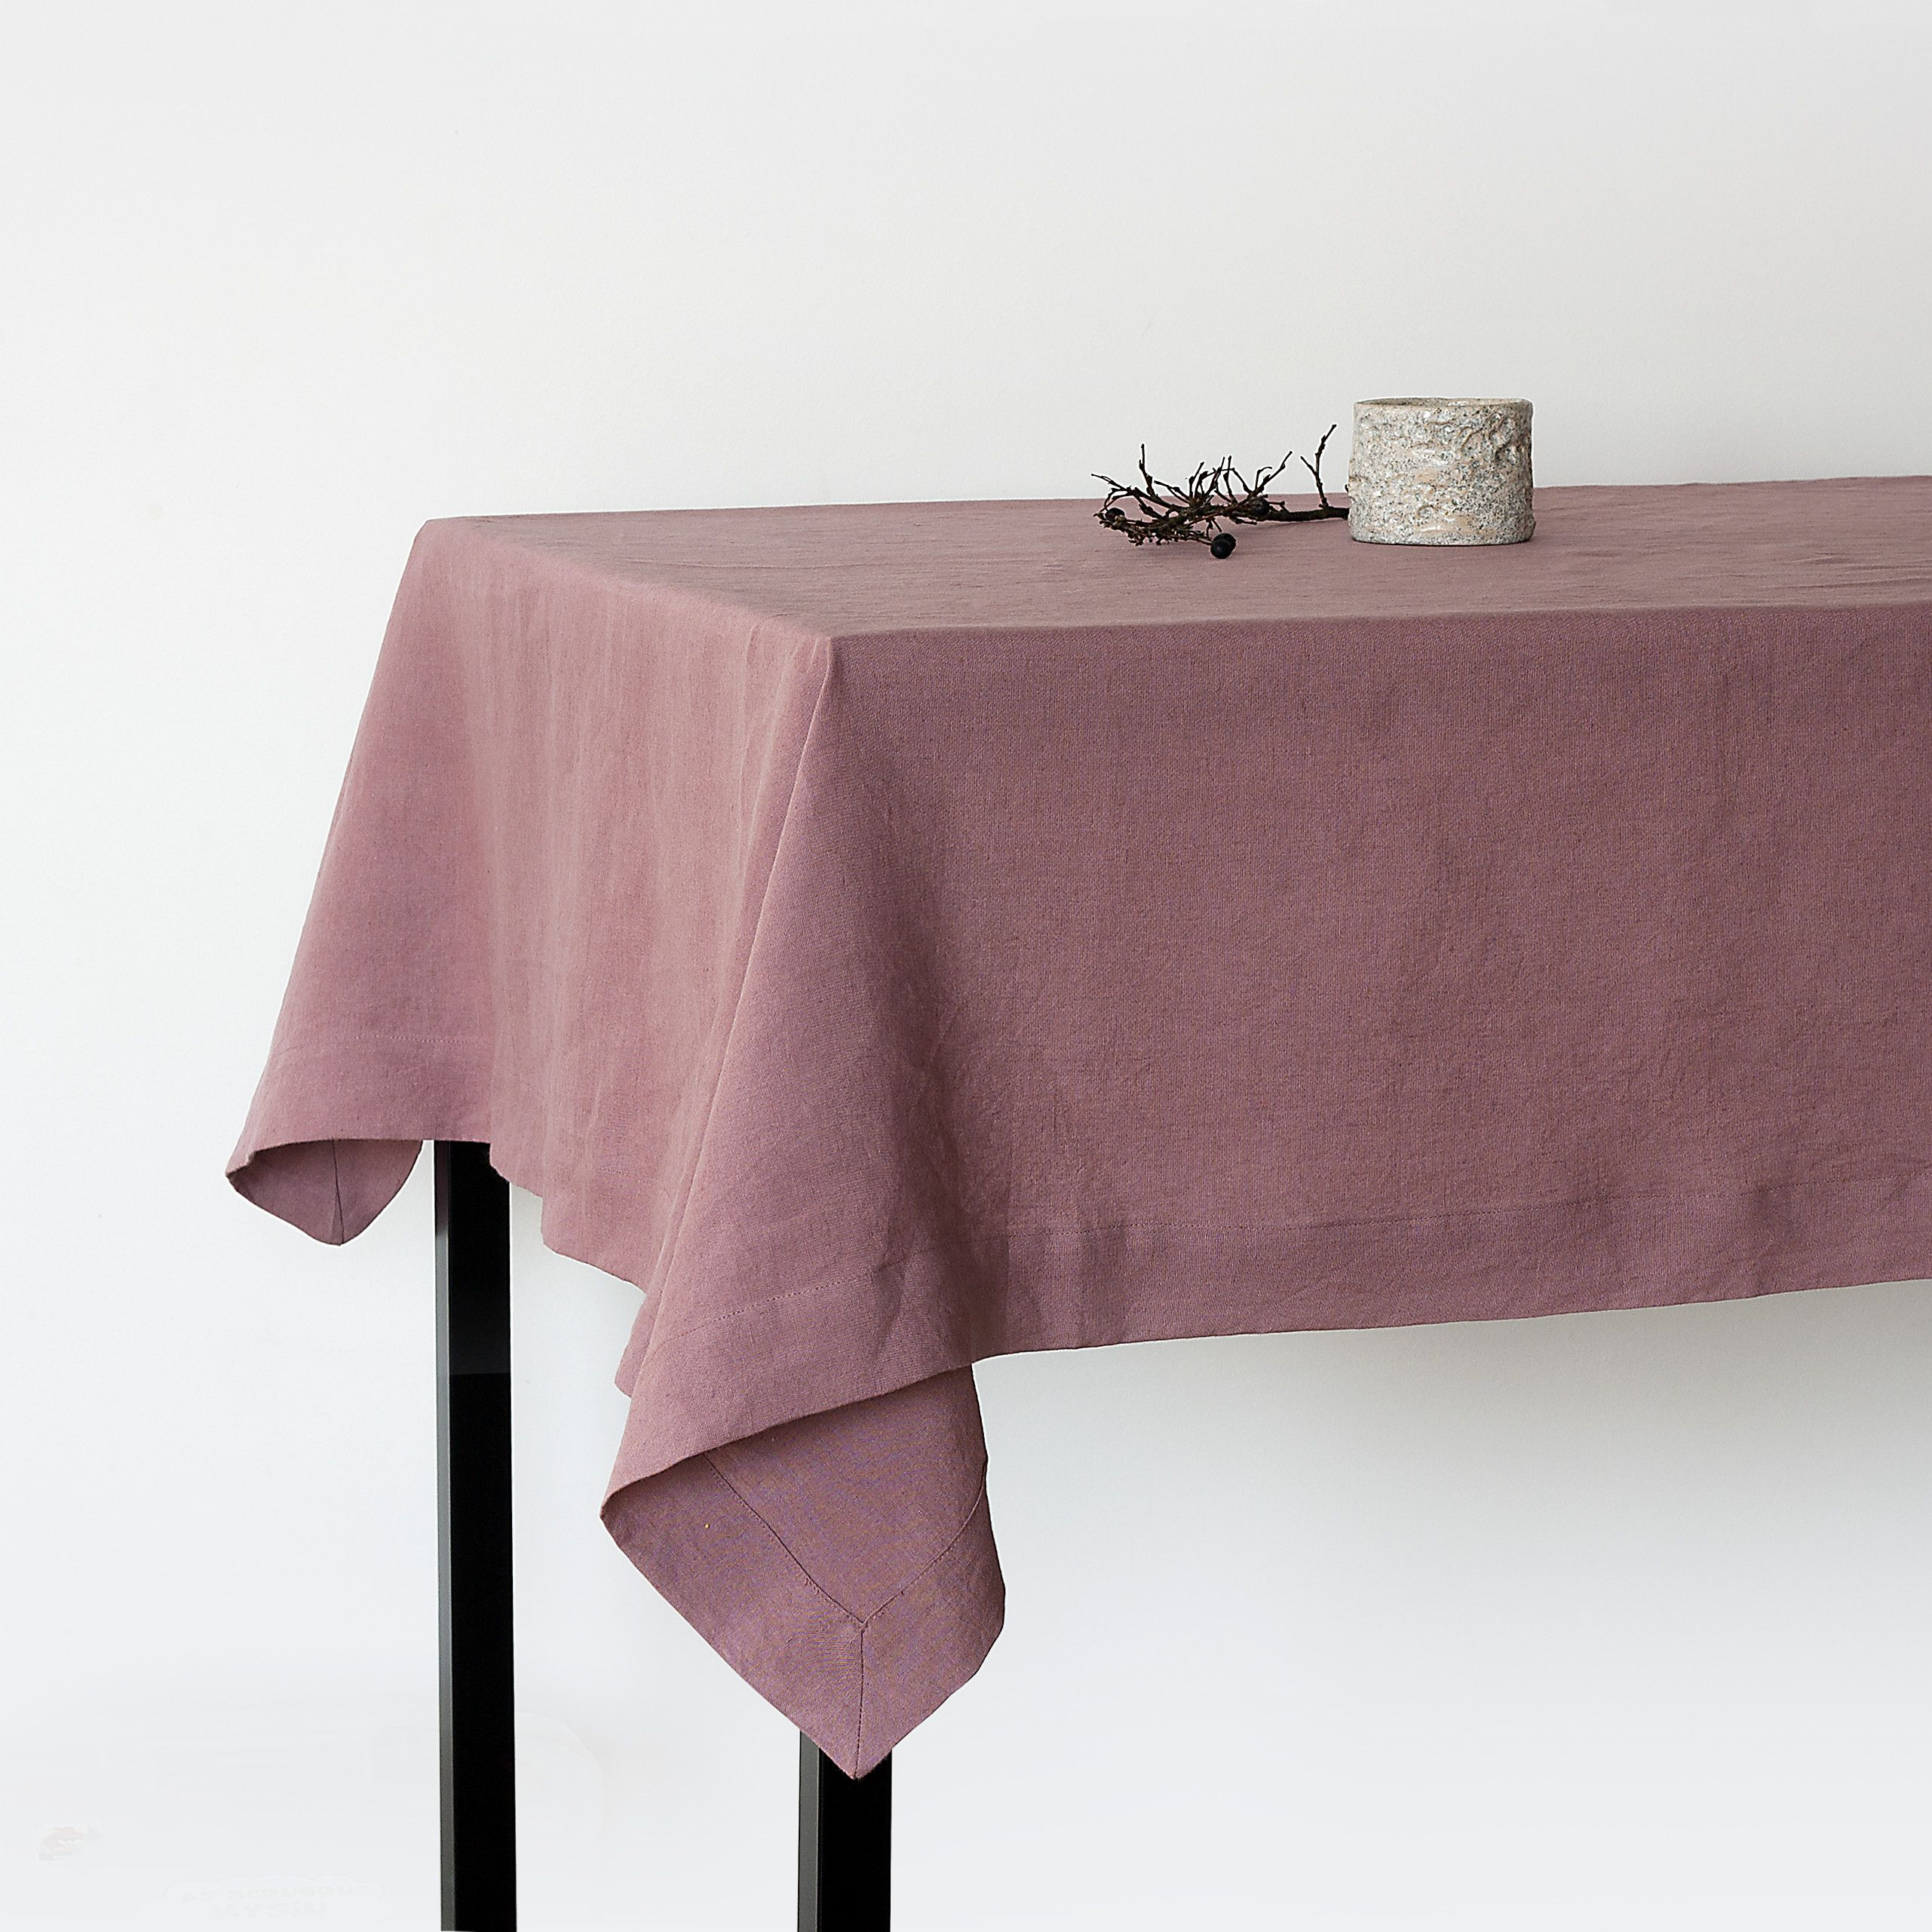 Dusty Rose Linen Tablecloth Soft Linen Tablecloth Linen Handmade Table Cloth Modern Design Homeware Natural Table Linens Sustainable Gift Simple Table Settings Simple Table Table Settings Everyday